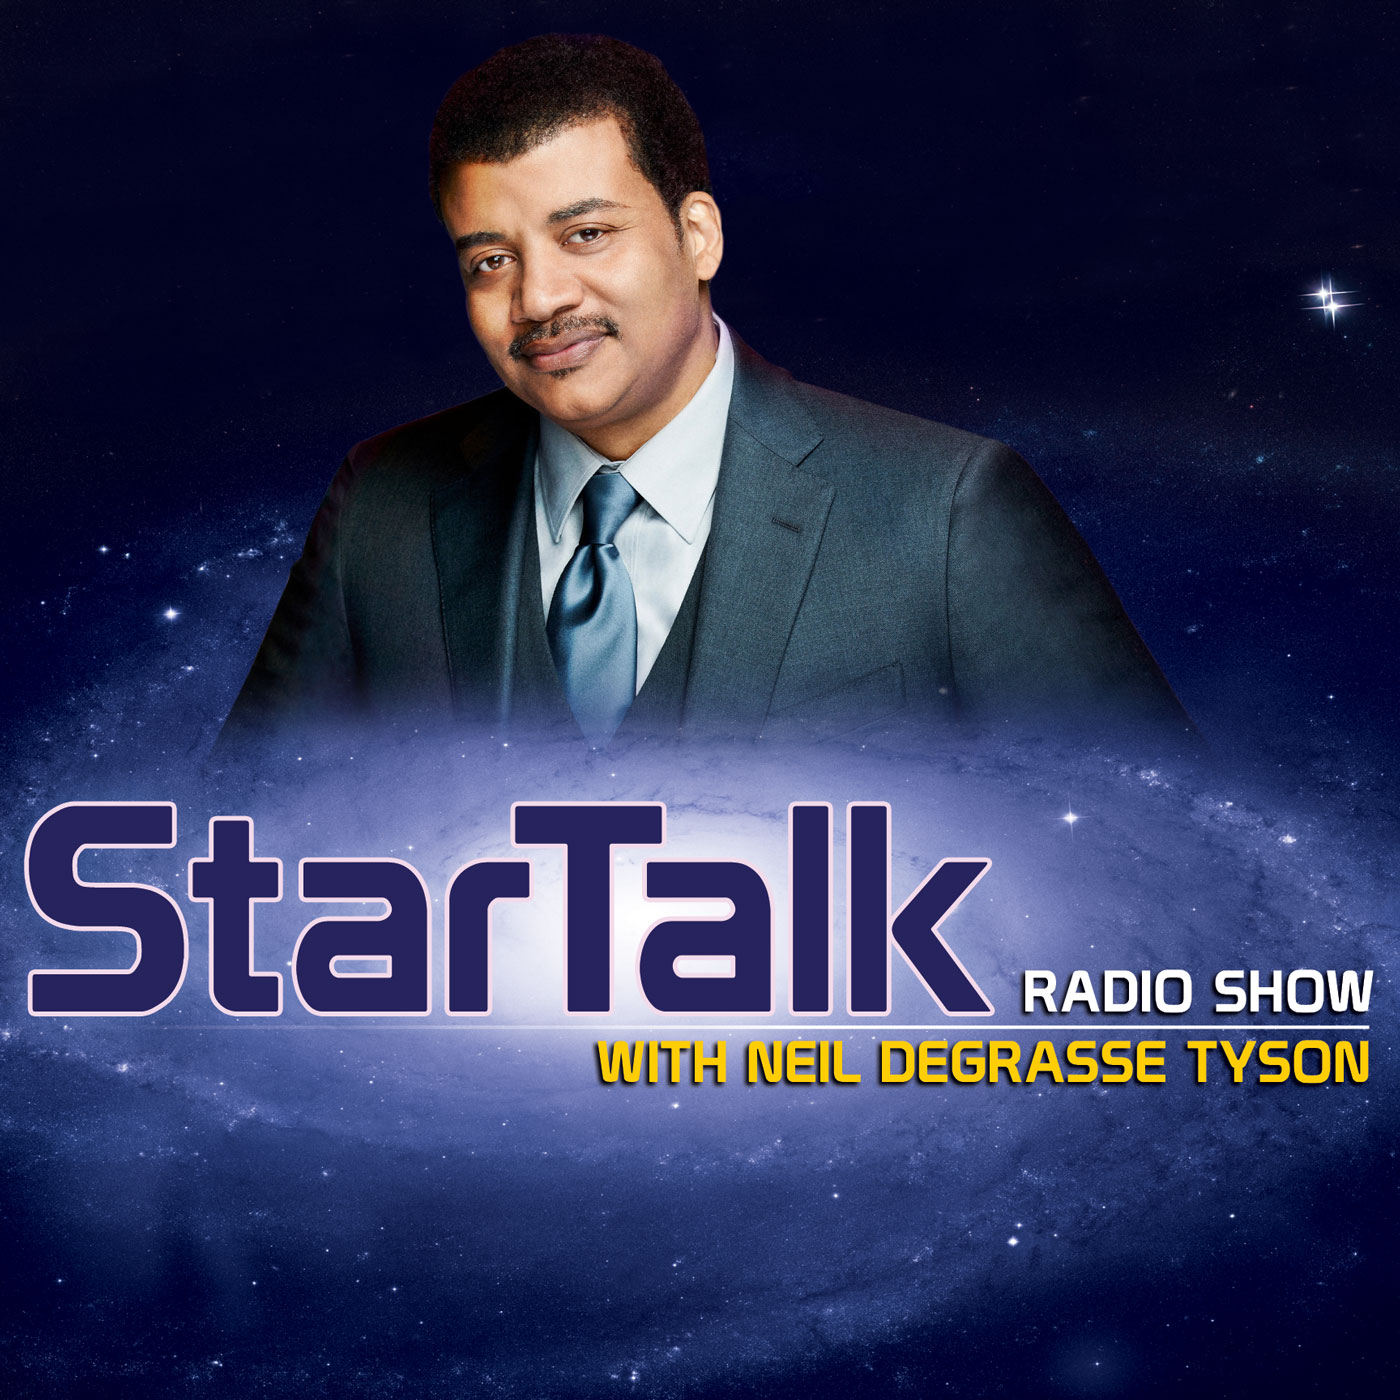 Star Talk Radio